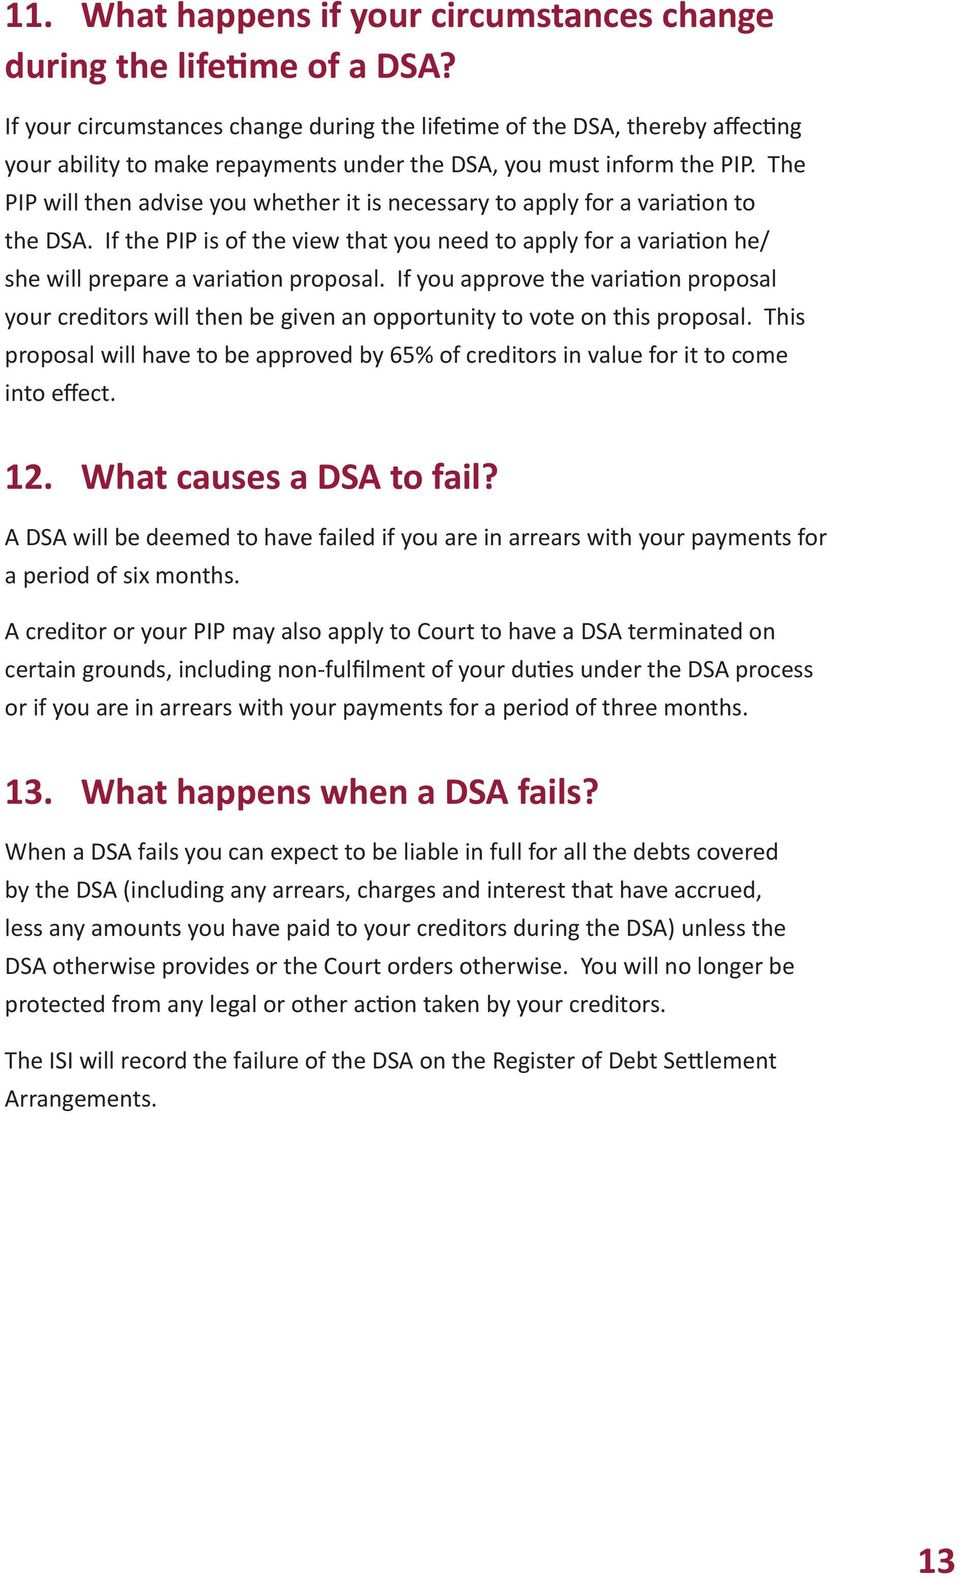 The PIP will then advise you whether it is necessary to apply for a variation to the DSA. If the PIP is of the view that you need to apply for a variation he/ she will prepare a variation proposal.